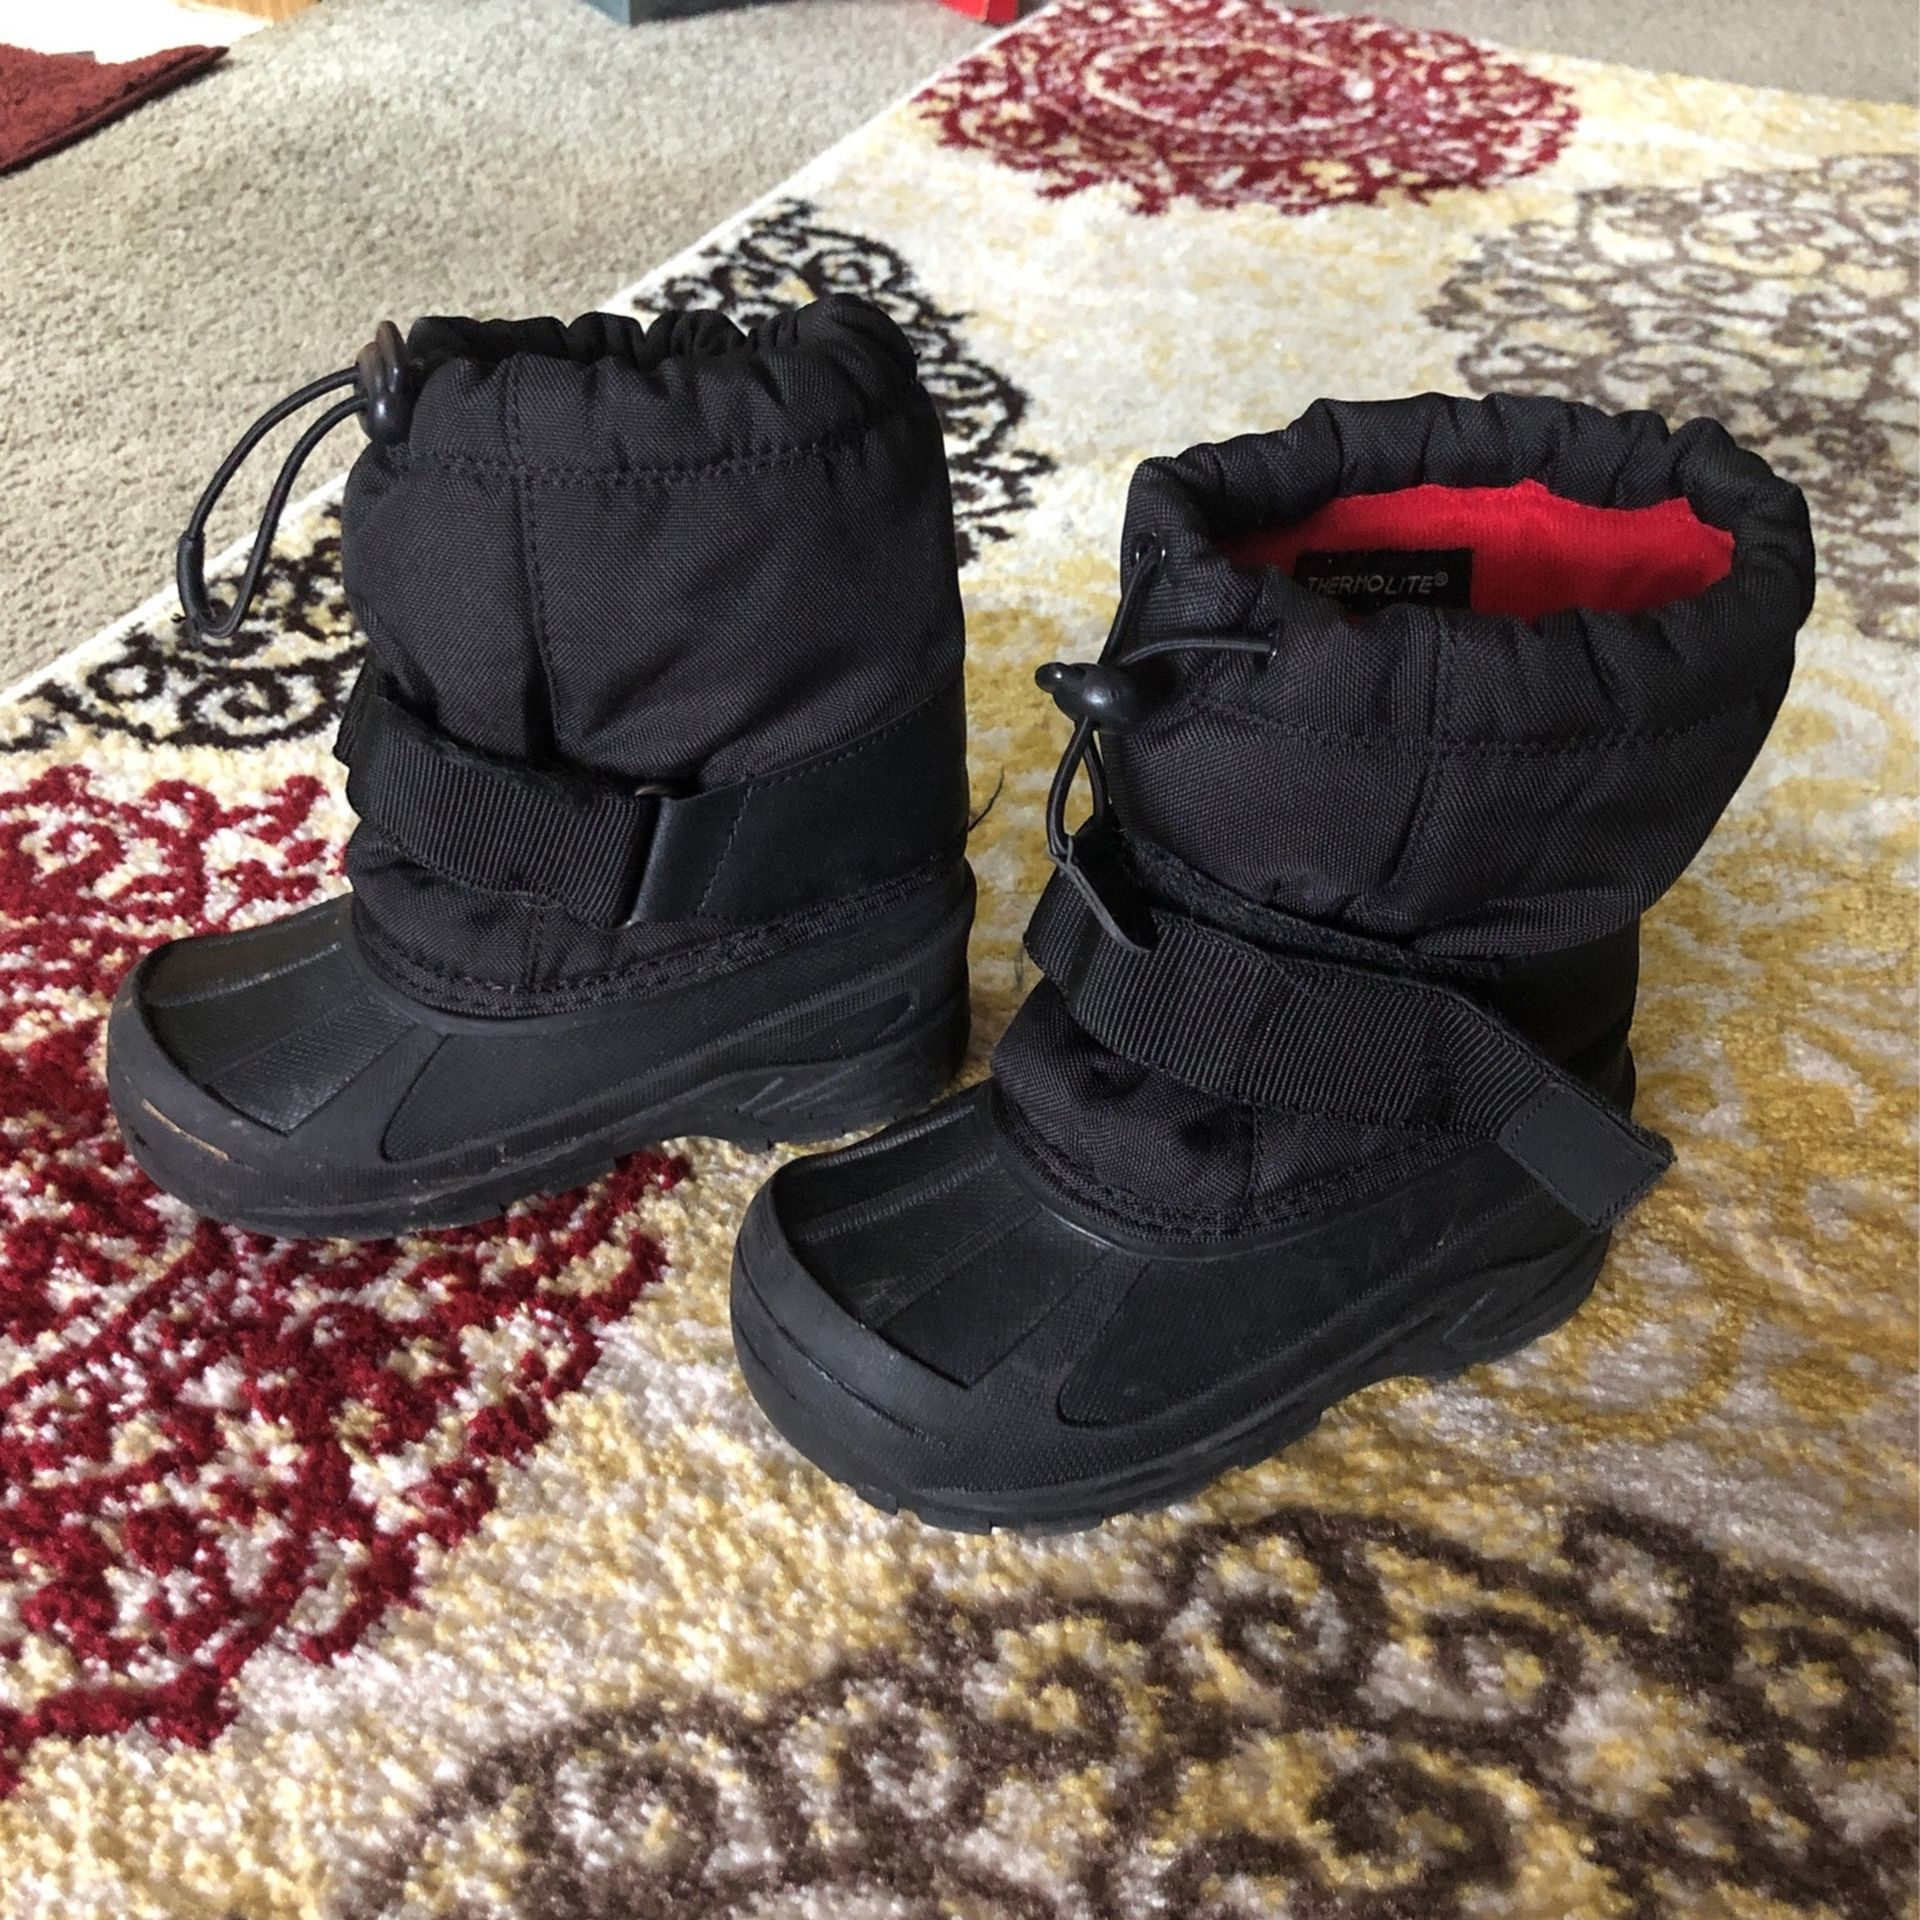 Toddler Snow Boots - 9/10